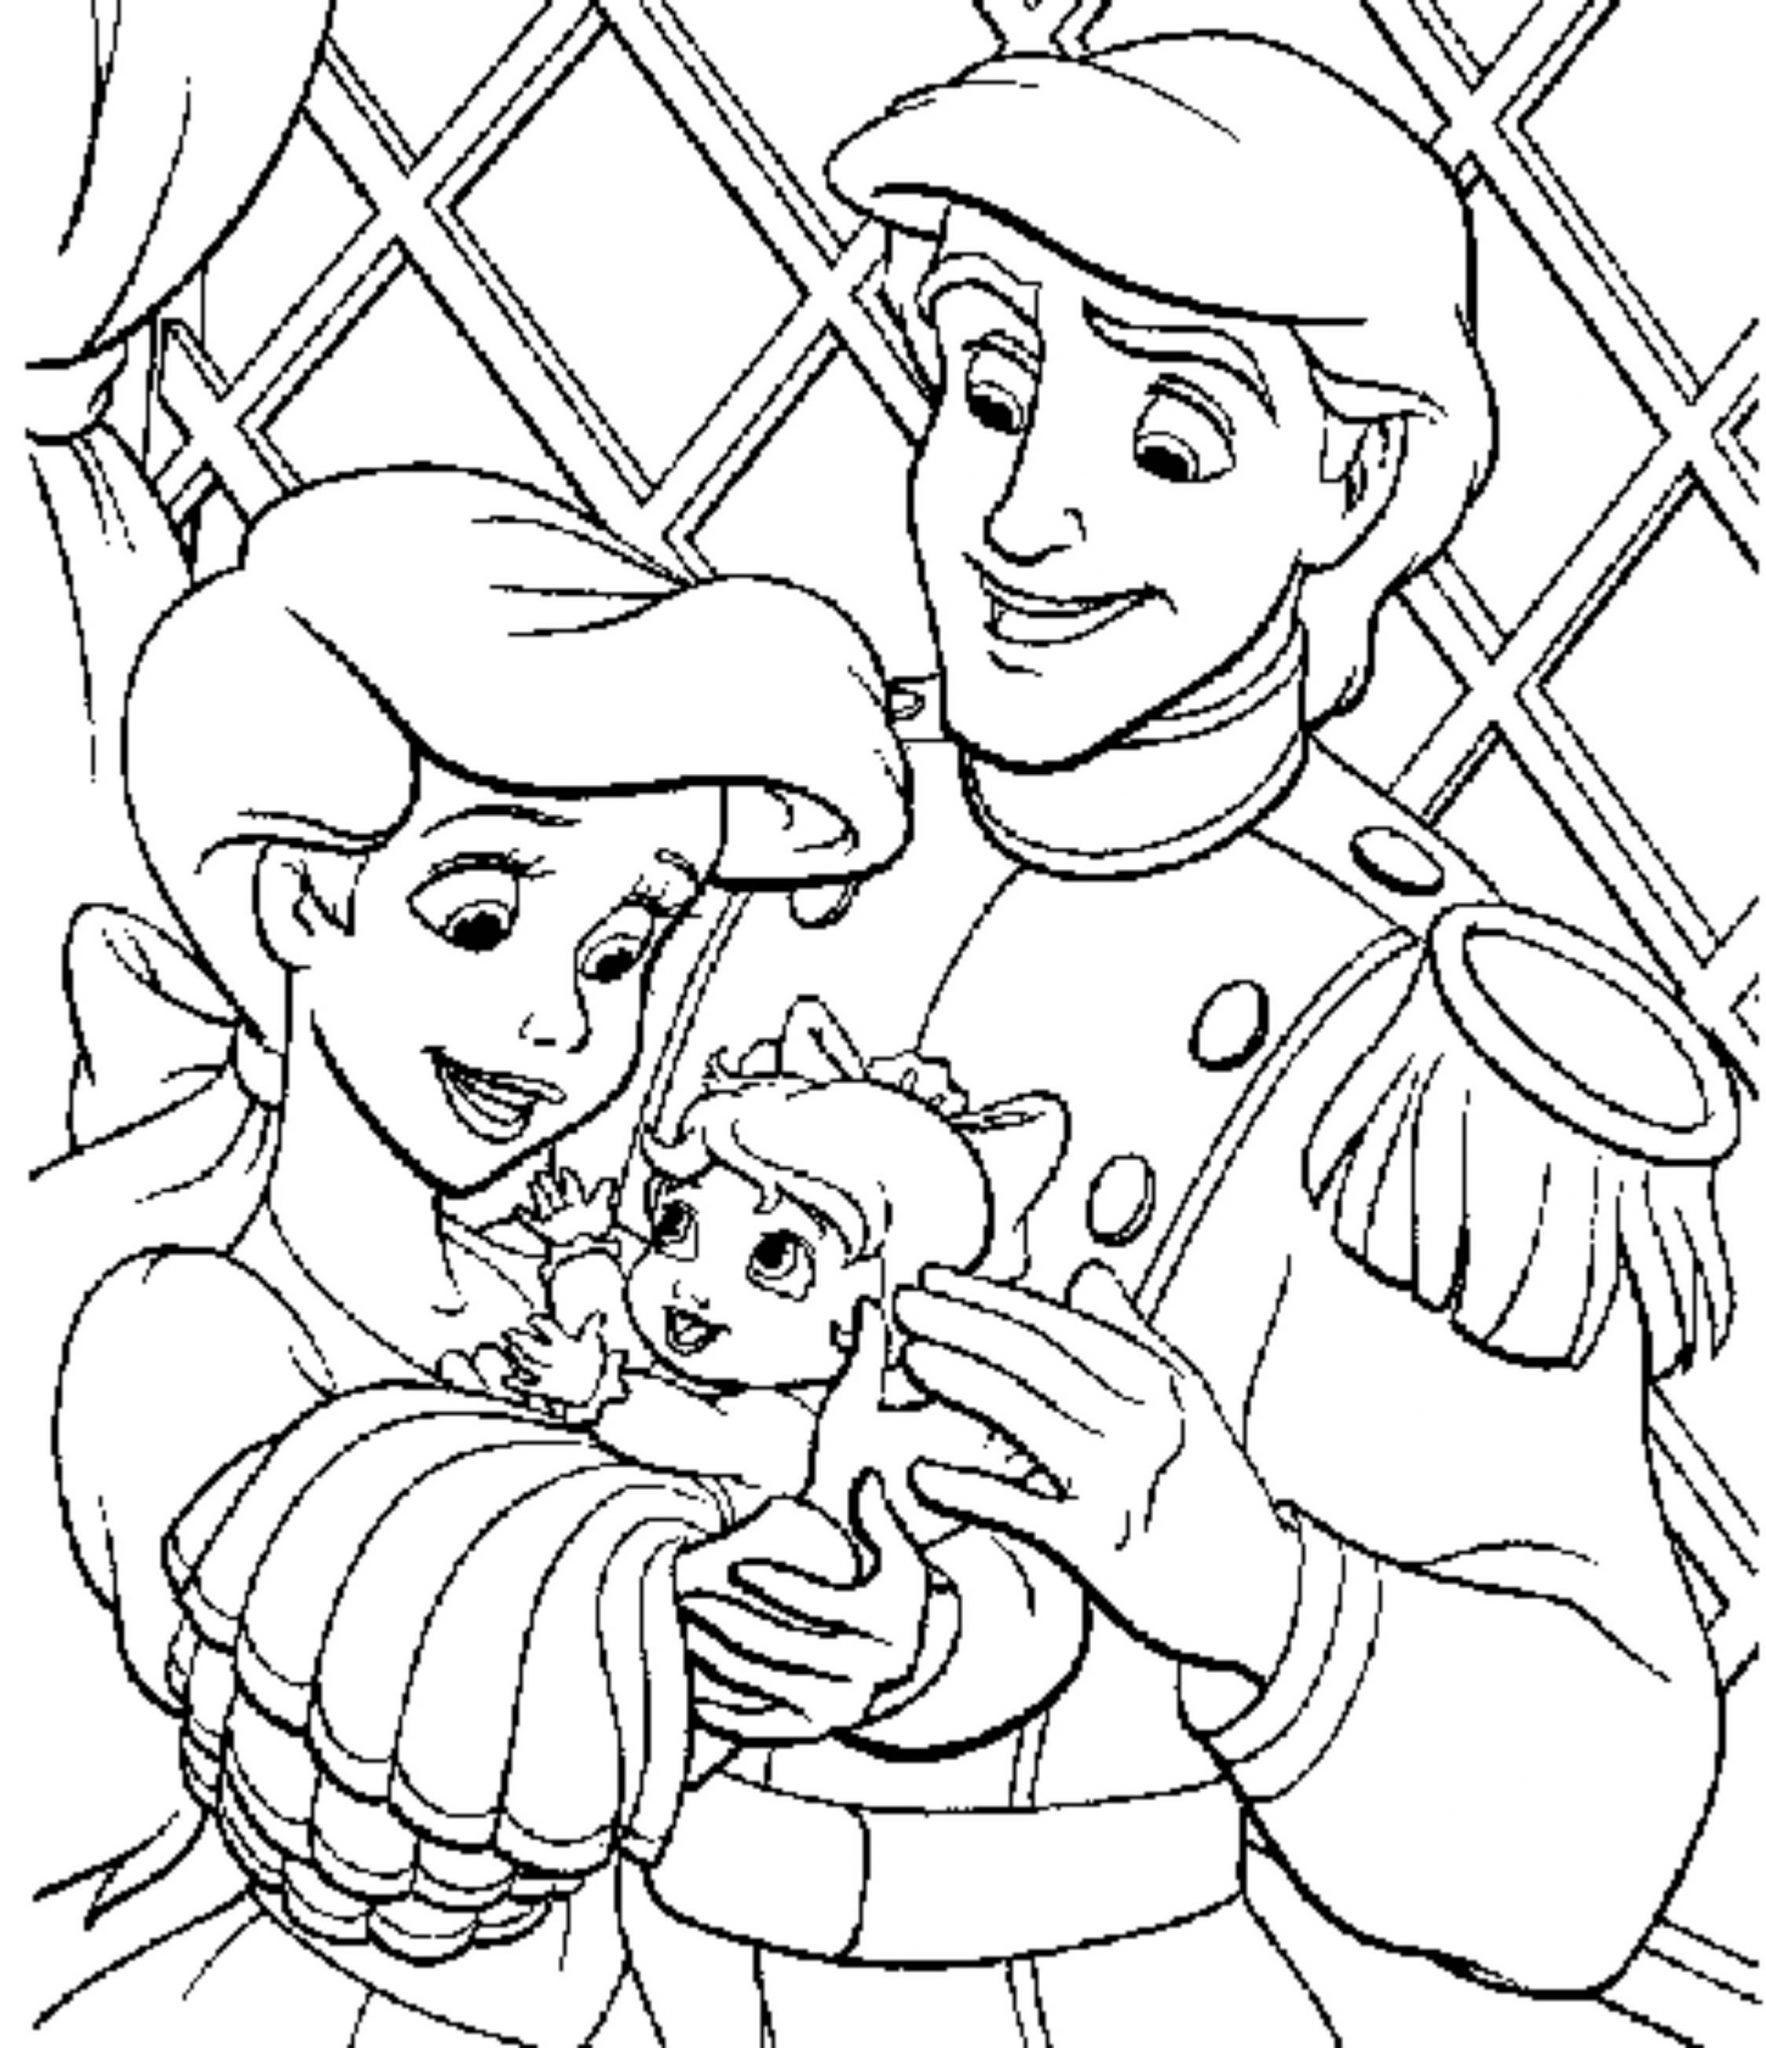 disney princess coloring worksheets disney princess coloring pages minister coloring coloring princess disney worksheets